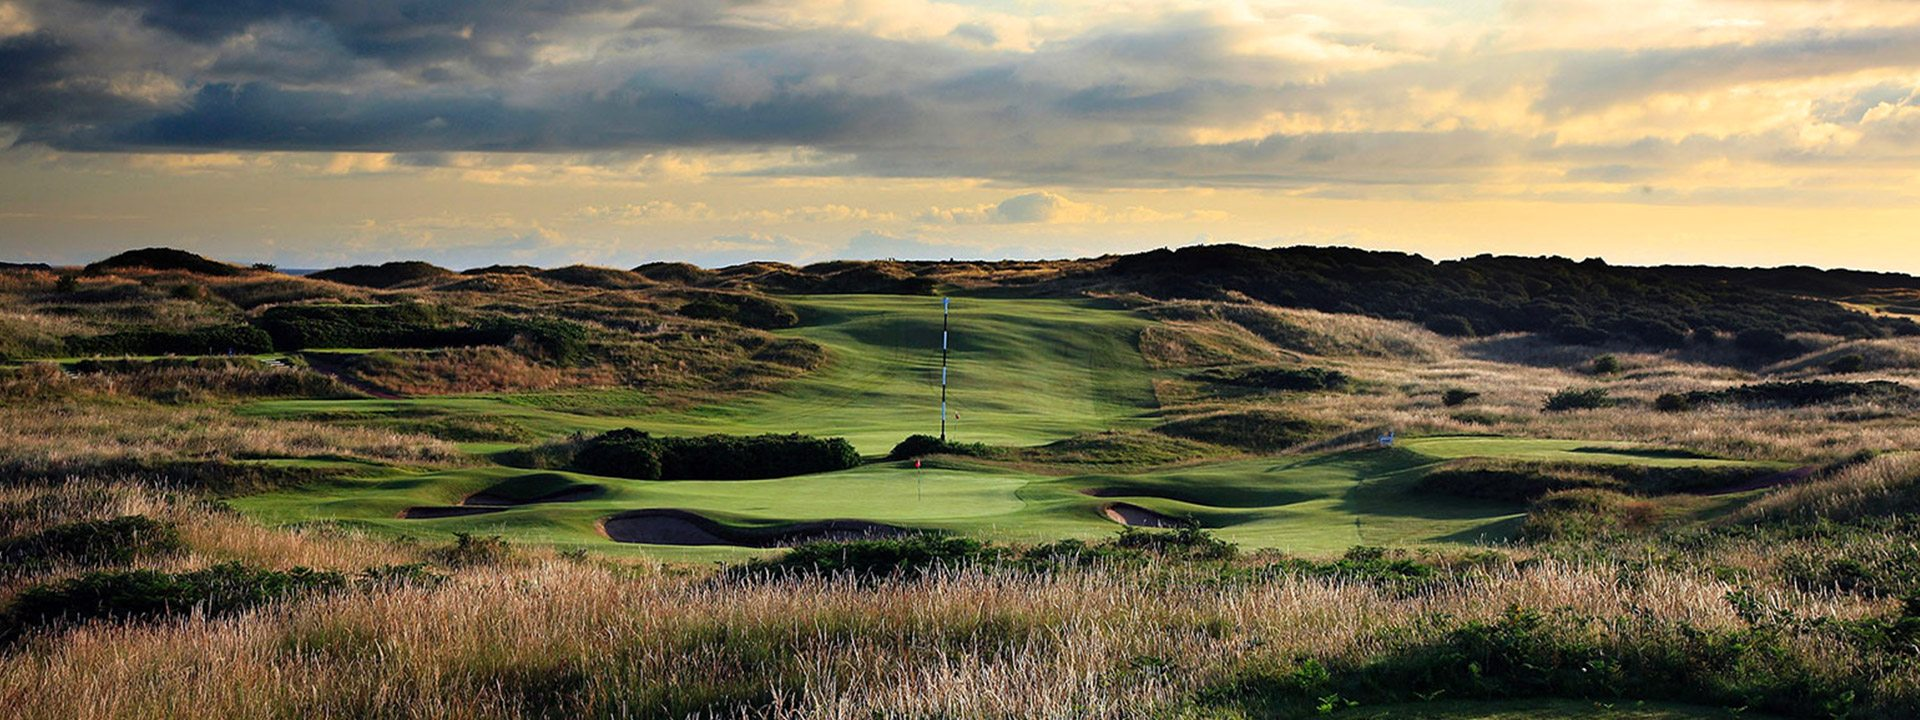 Royal Portrush Golf Club (Dunluce Course)